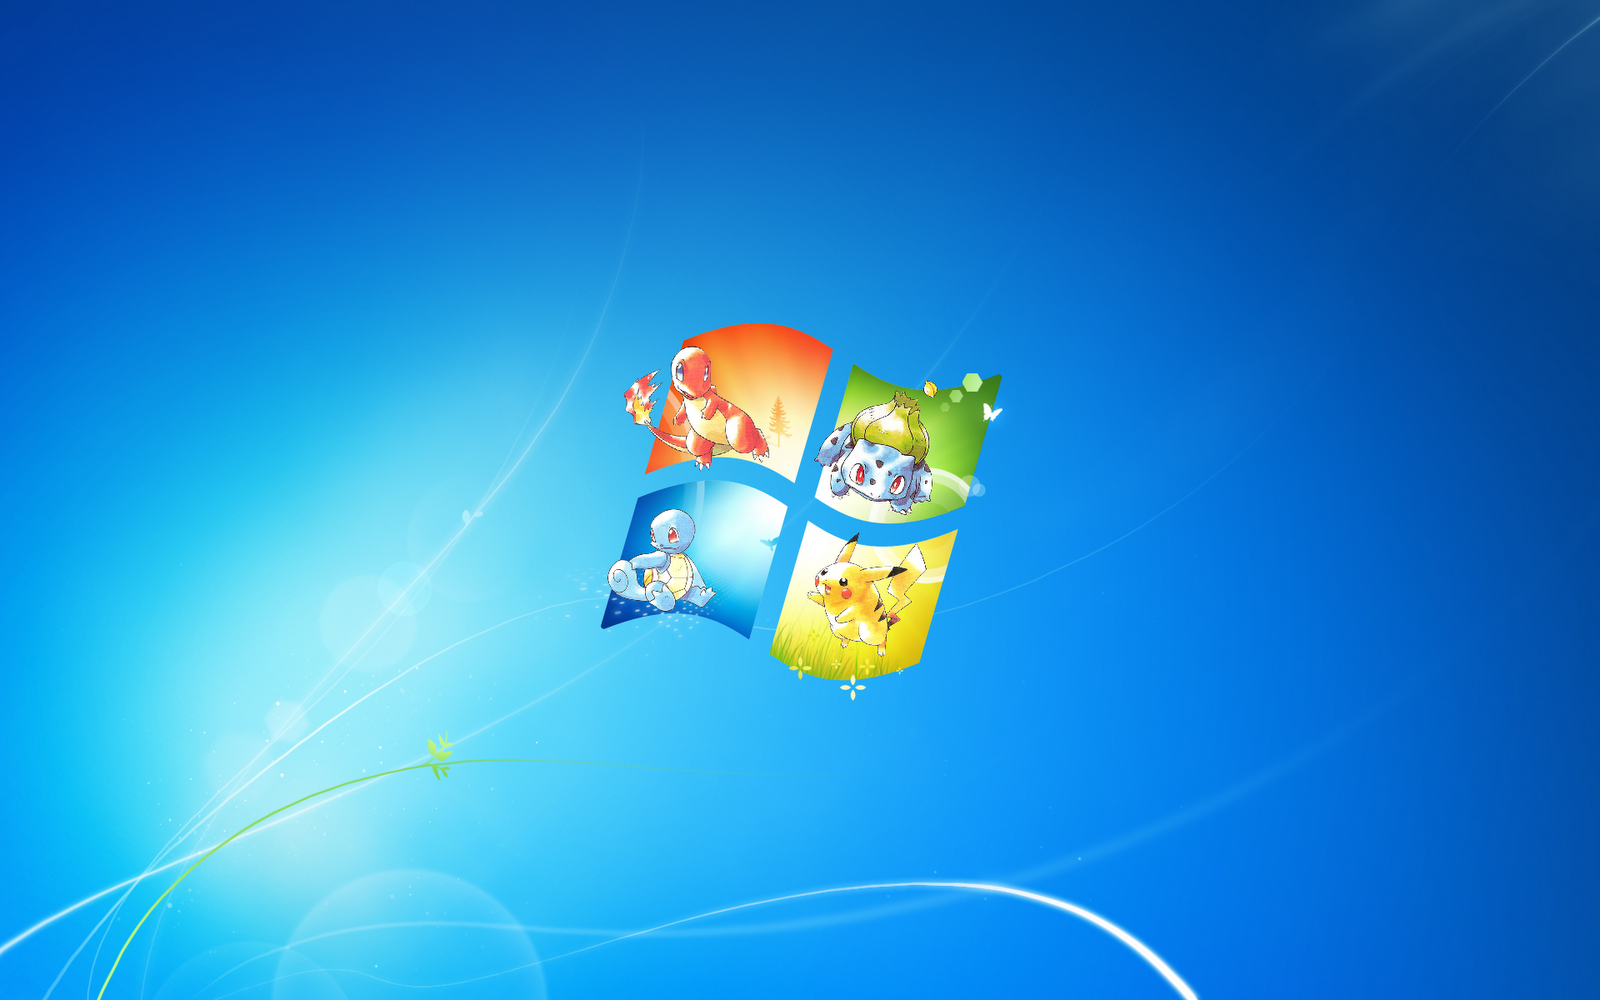 Windows Wallpaper Desktop PC